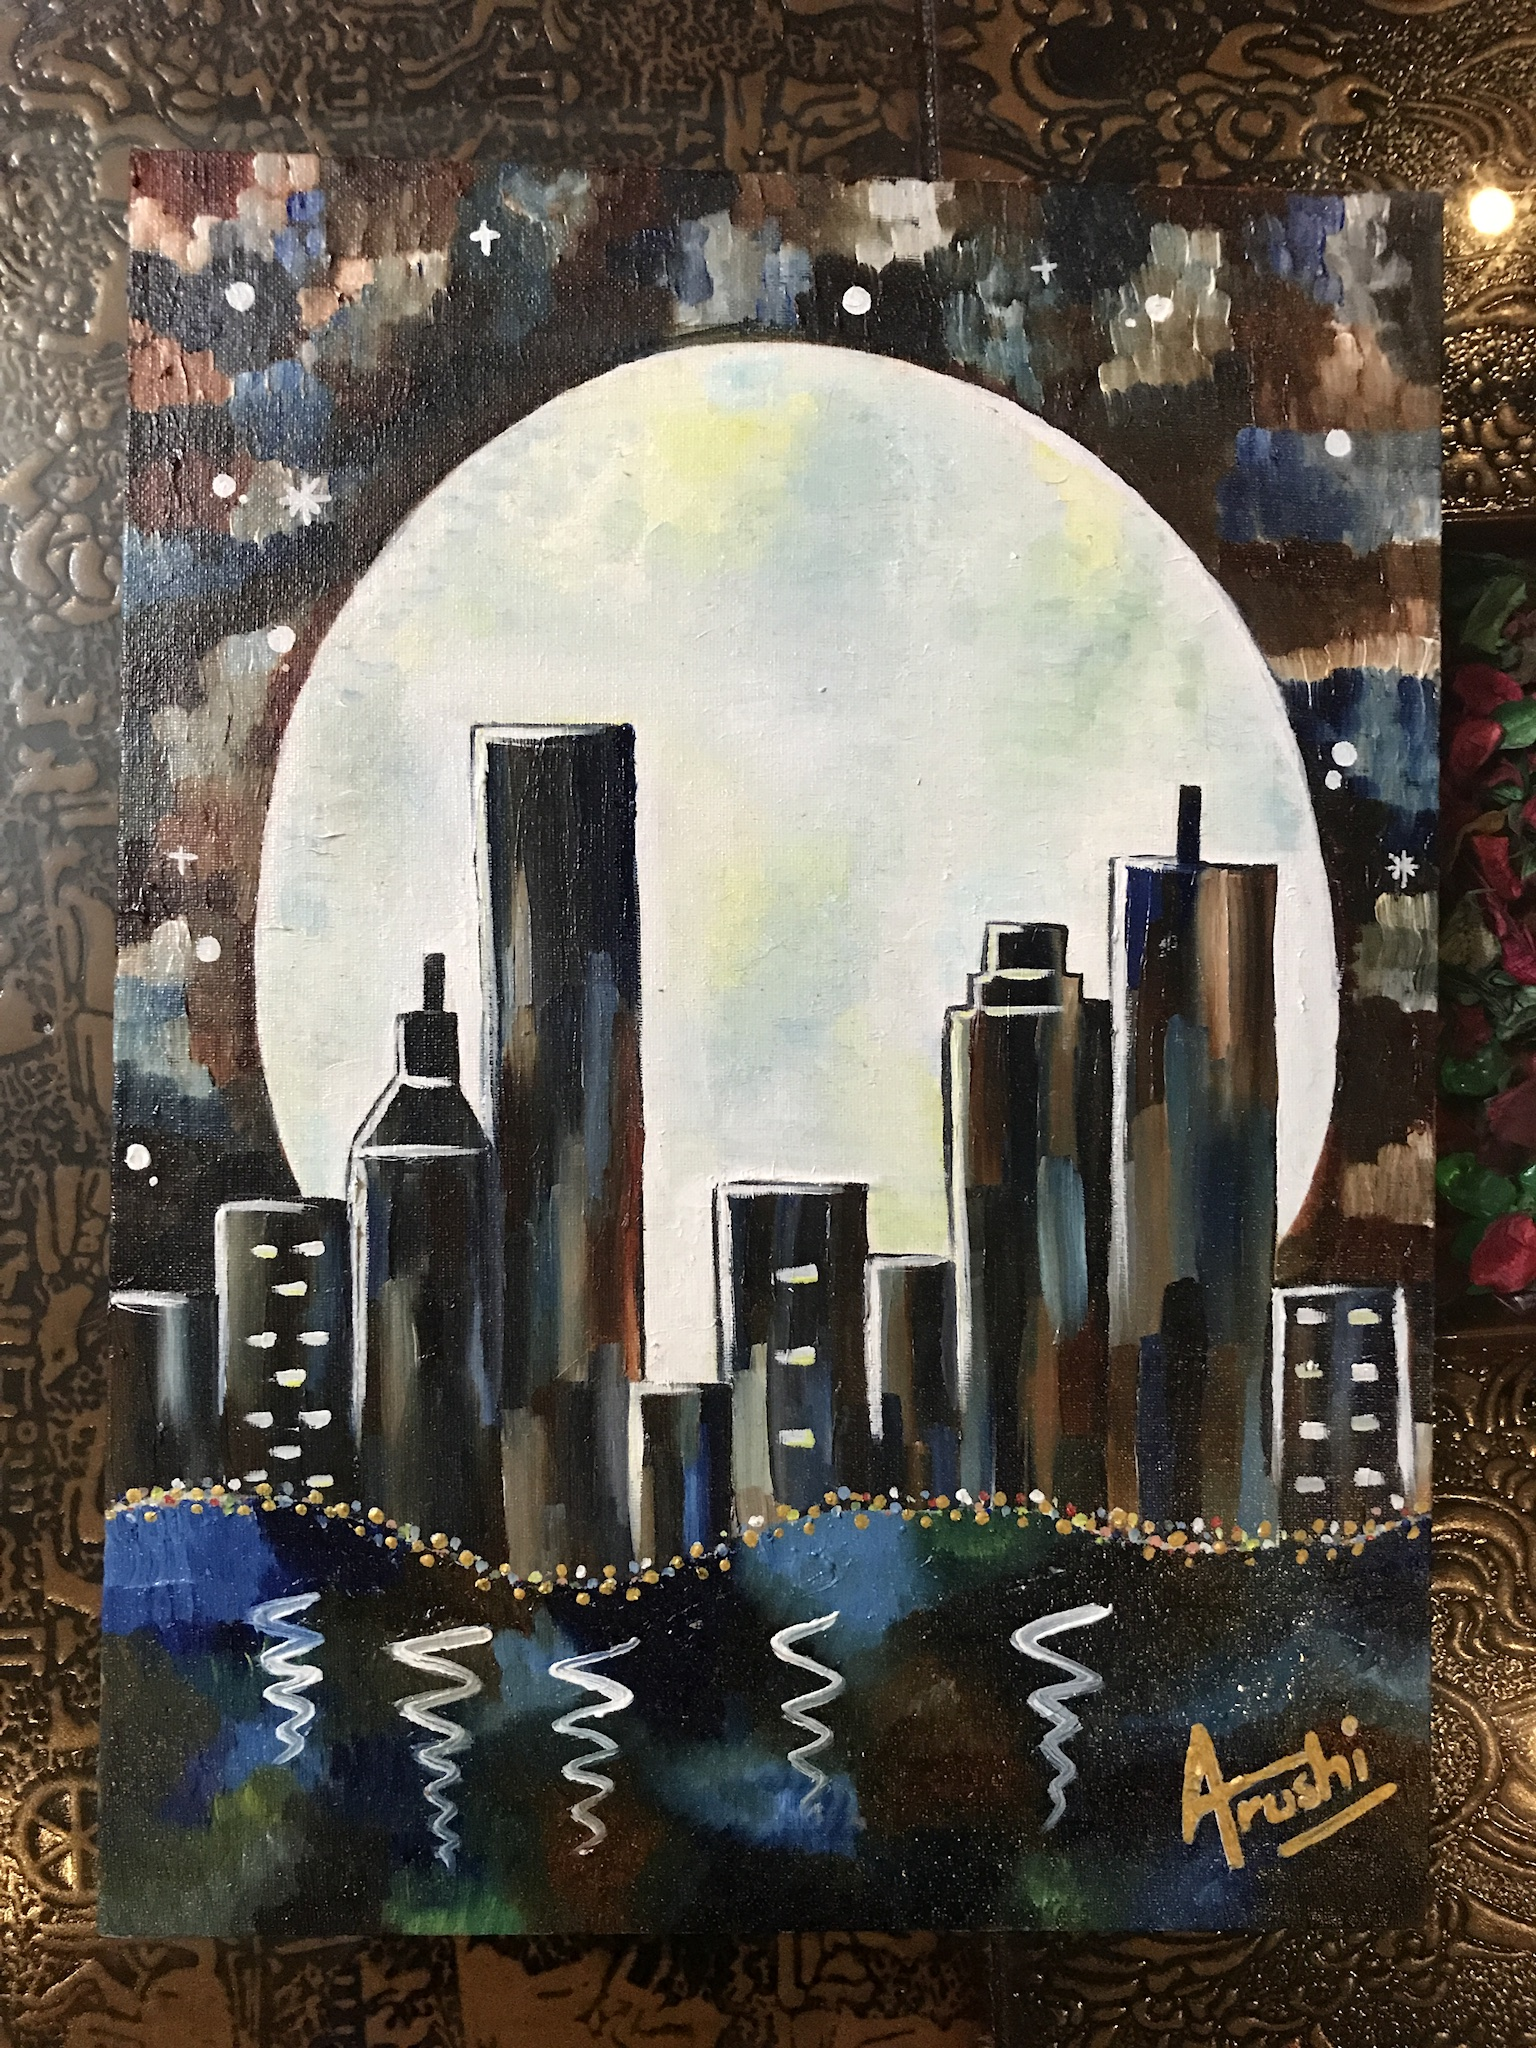 Arushi's Painting On City Life